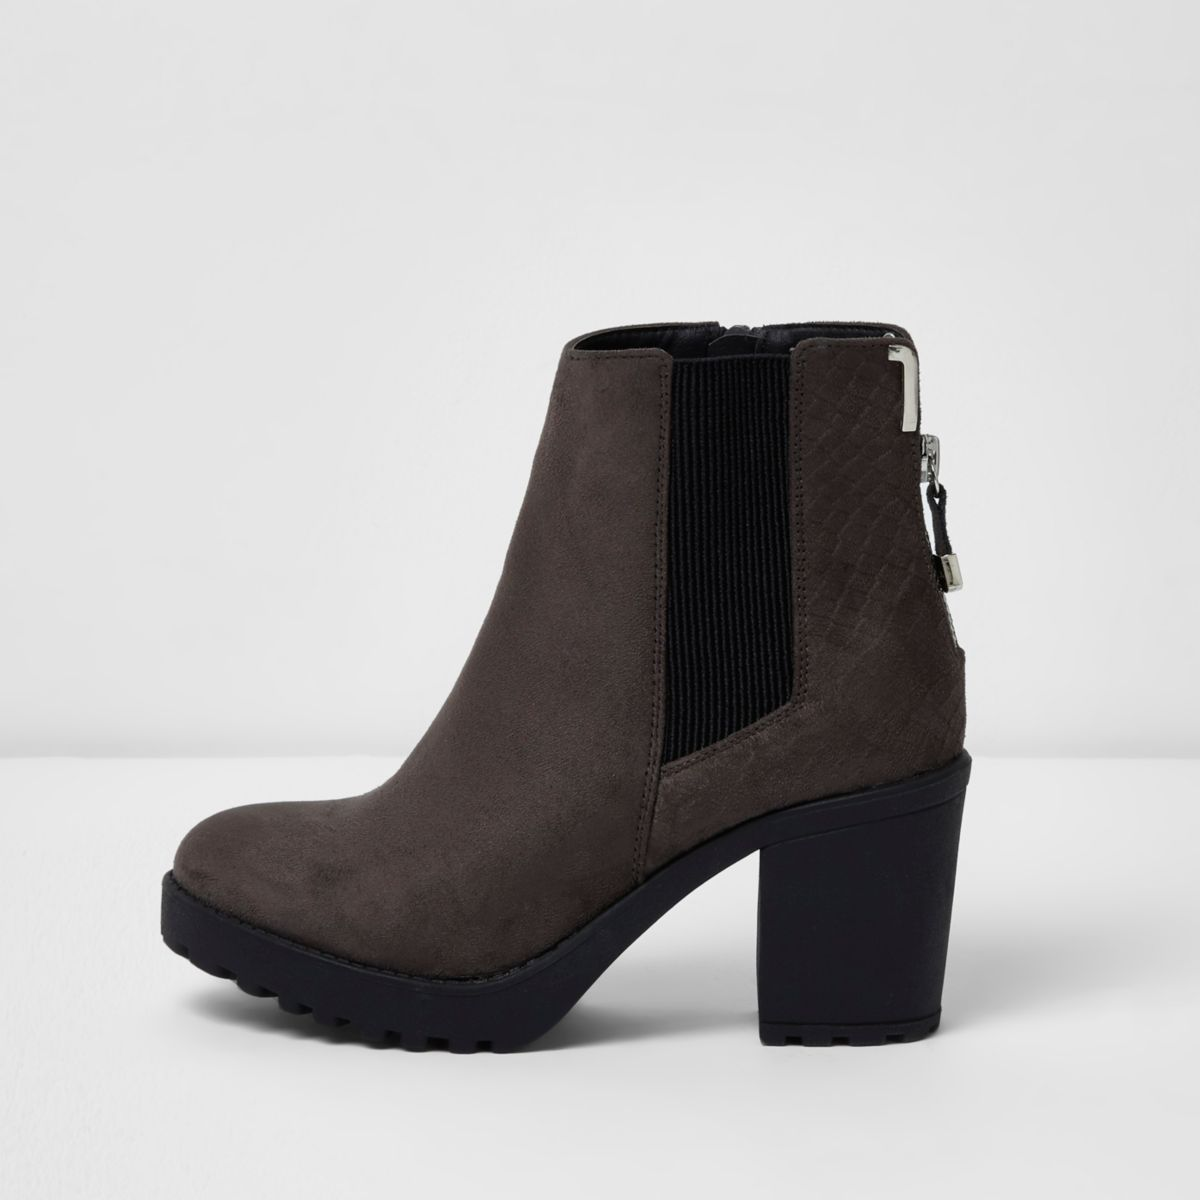 Grey chunky block heel ankle boots - Shoes & Boots - Sale - women